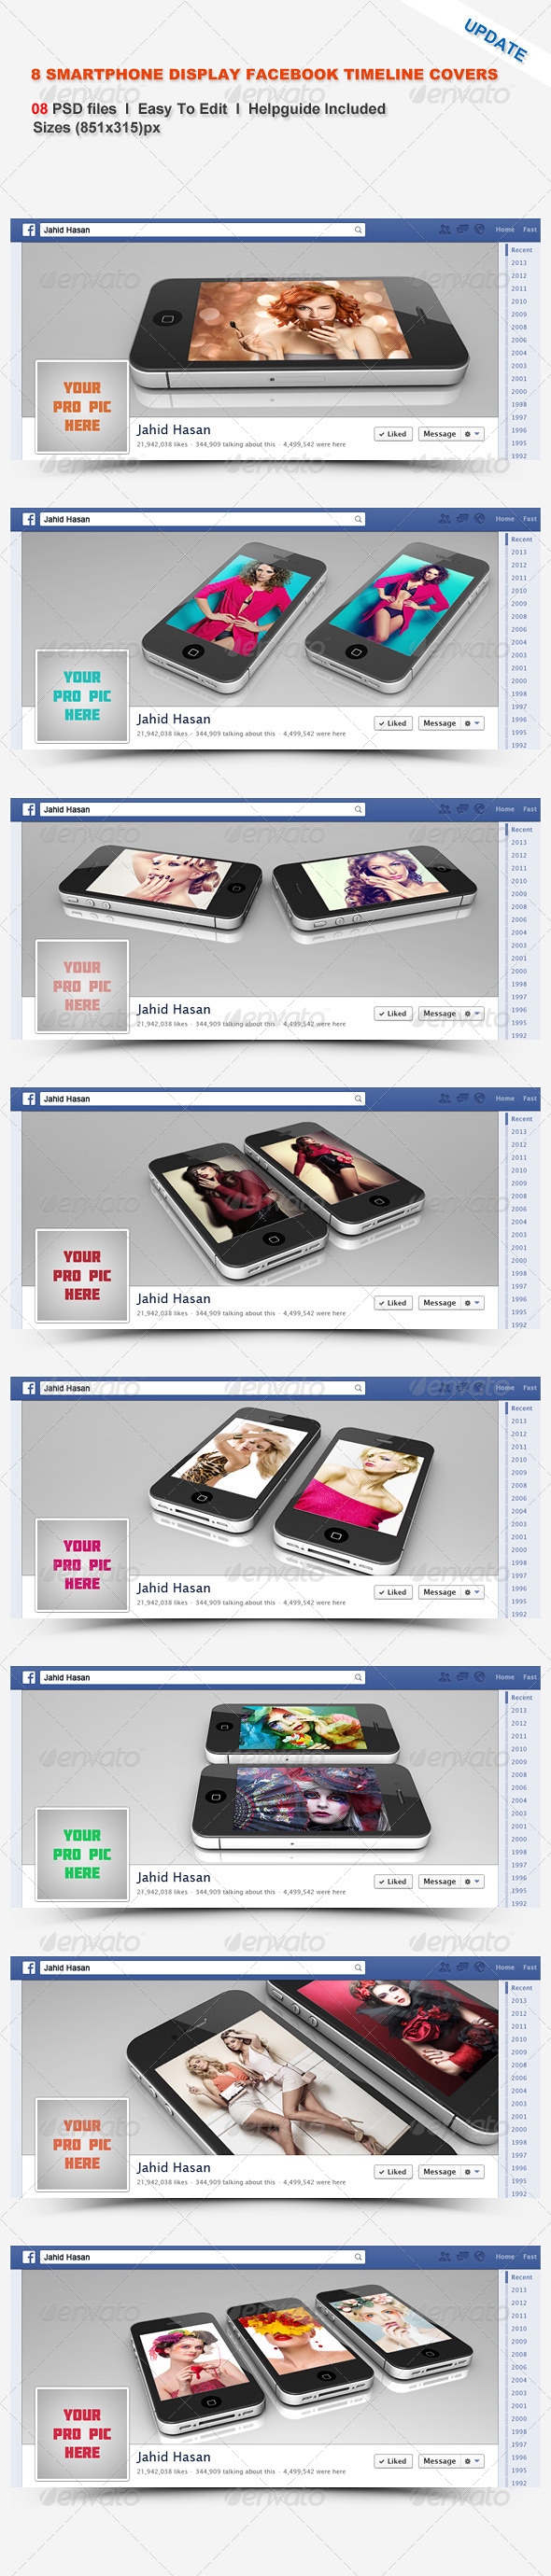 8 Smartphone Display Facebook Timeline Covers - Facebook Timeline Covers Social Media